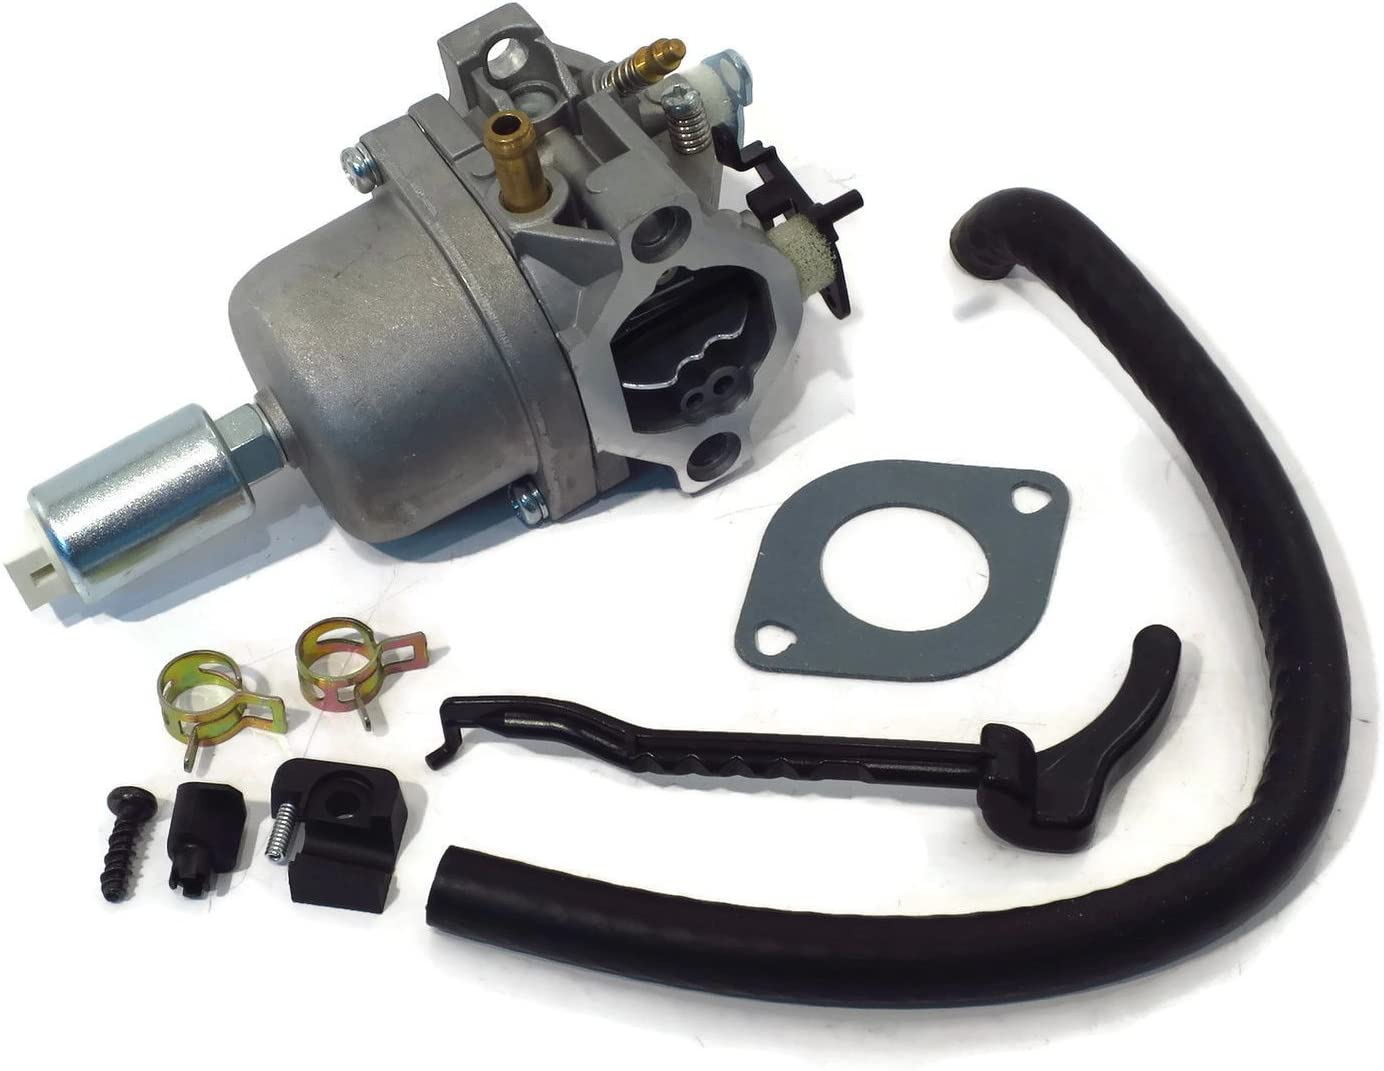 The ROP Shop Compatible Carburetor Replacement for Briggs & Stratton 311707, 311777, 312707, 312777, 313707, 313777